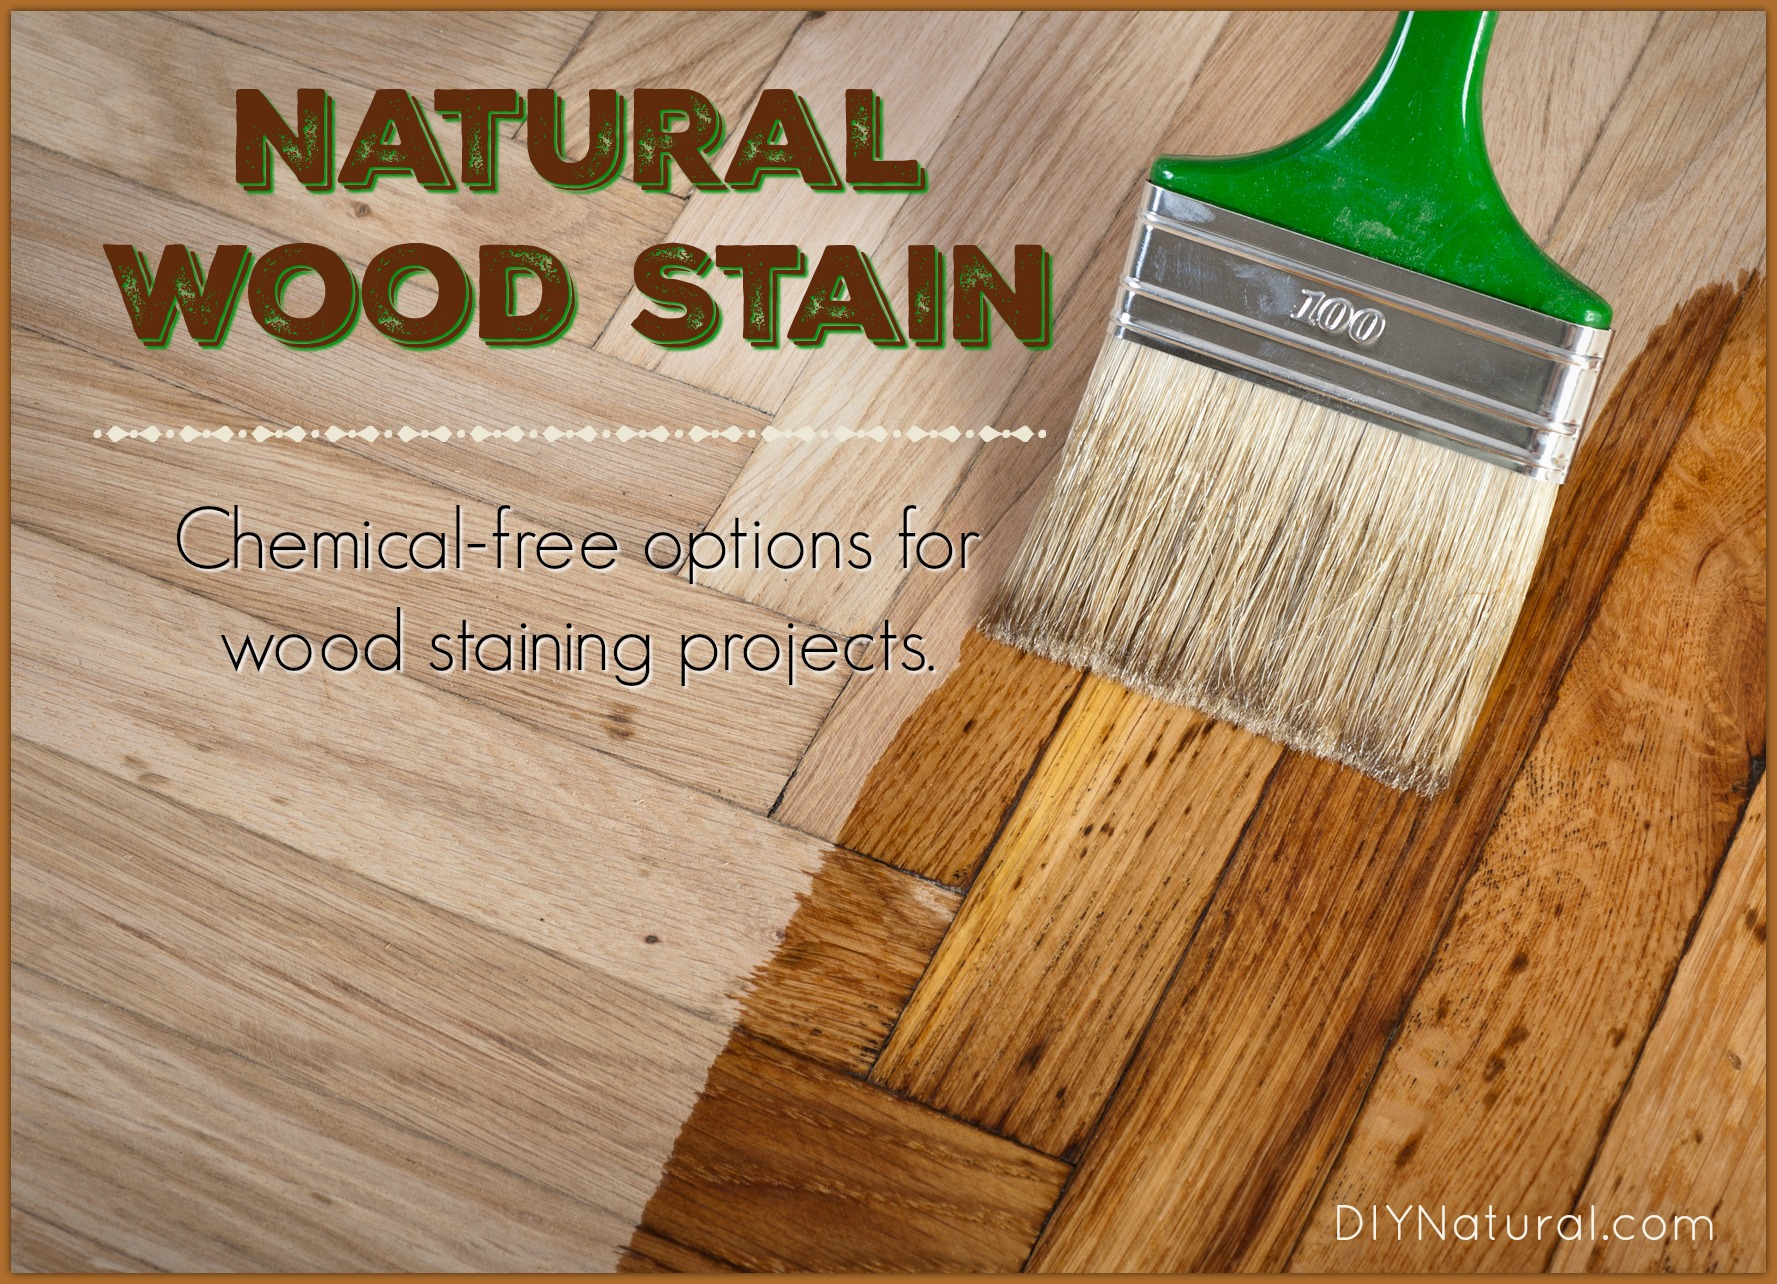 Diy Deck Cleaner Homemade Wood Stain Learn To Make Natural Stain At Home